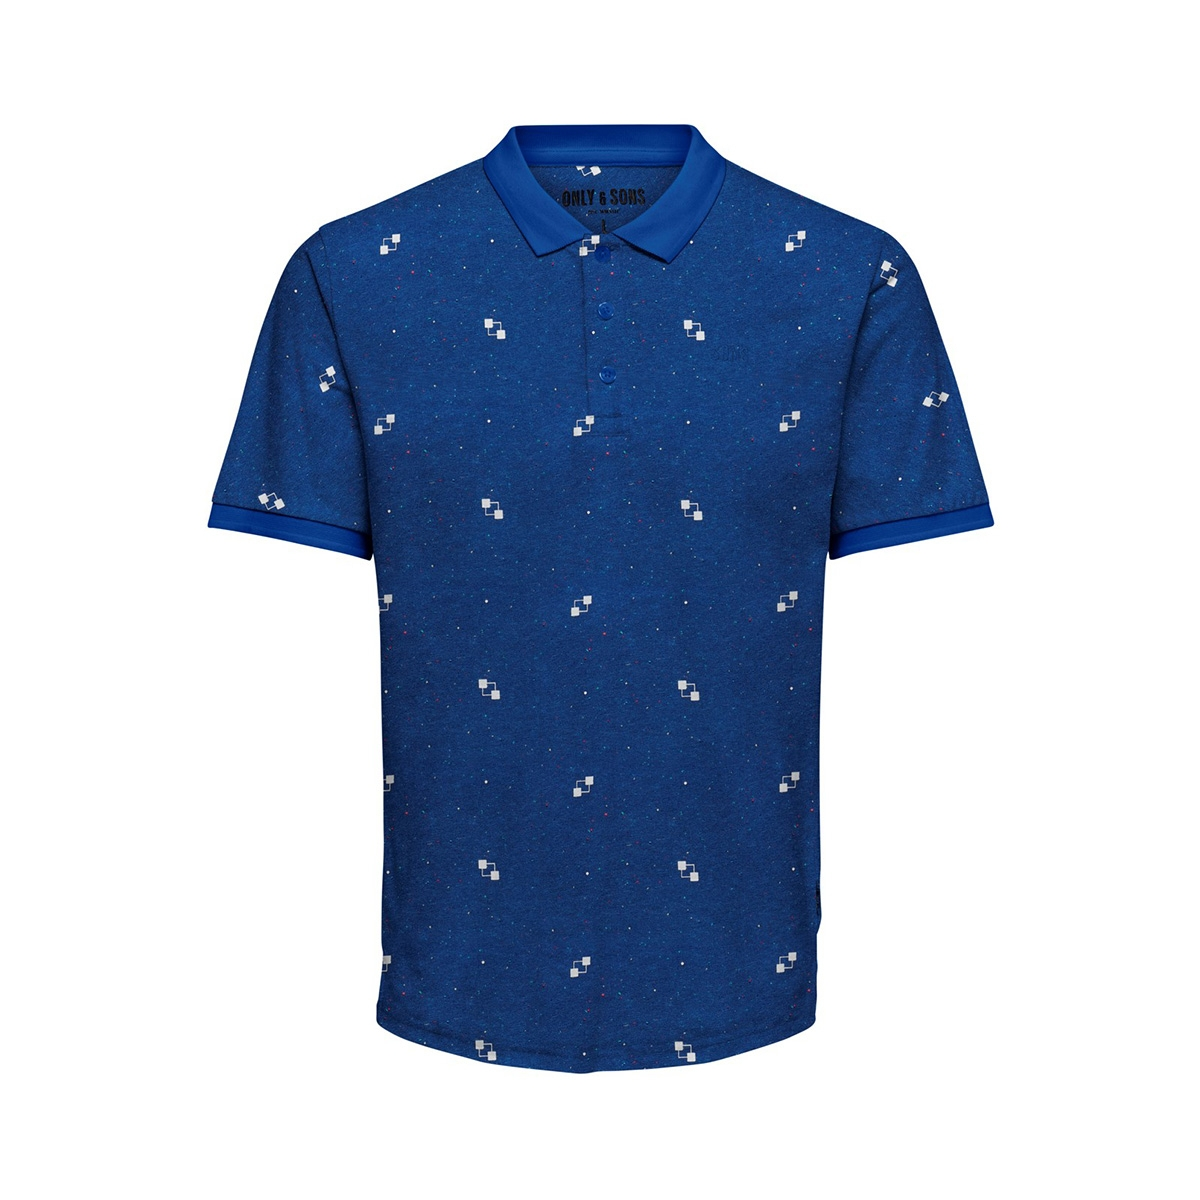 onsknight slim ss aop polo tee 22014787 only & sons polo baleine blue